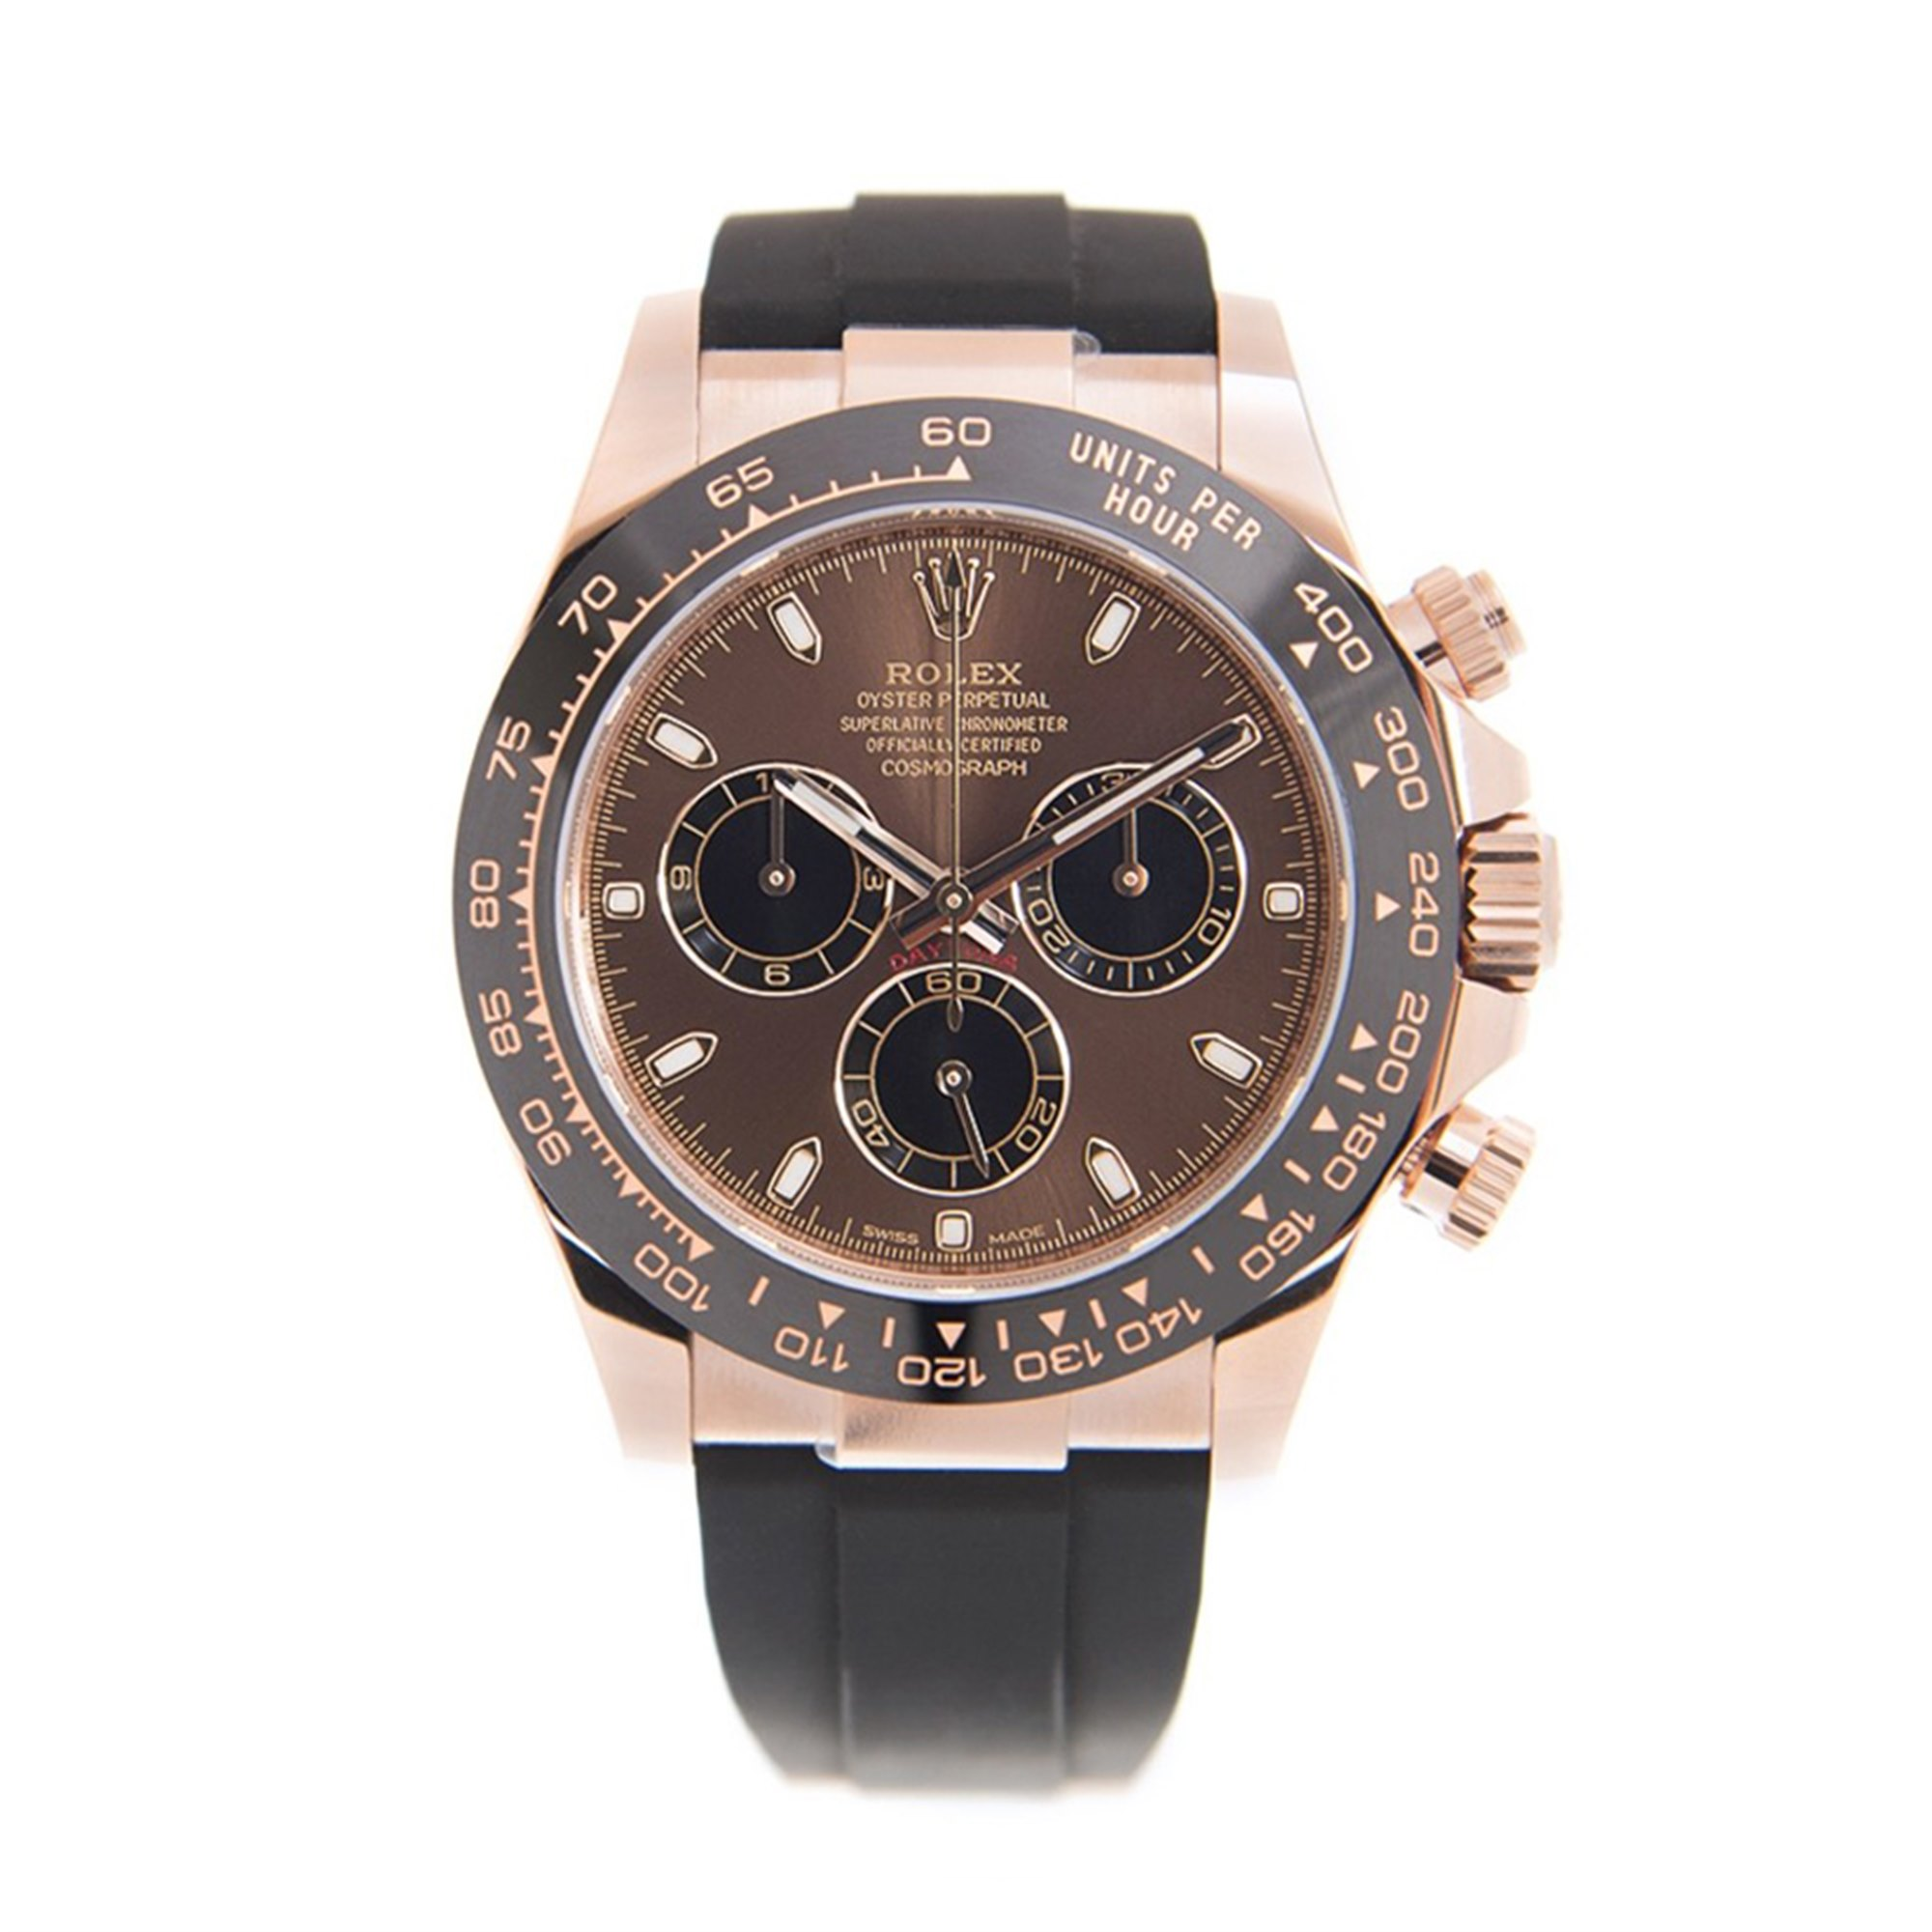 Rolex Daytona Chronograph Rose Gold 116515LN